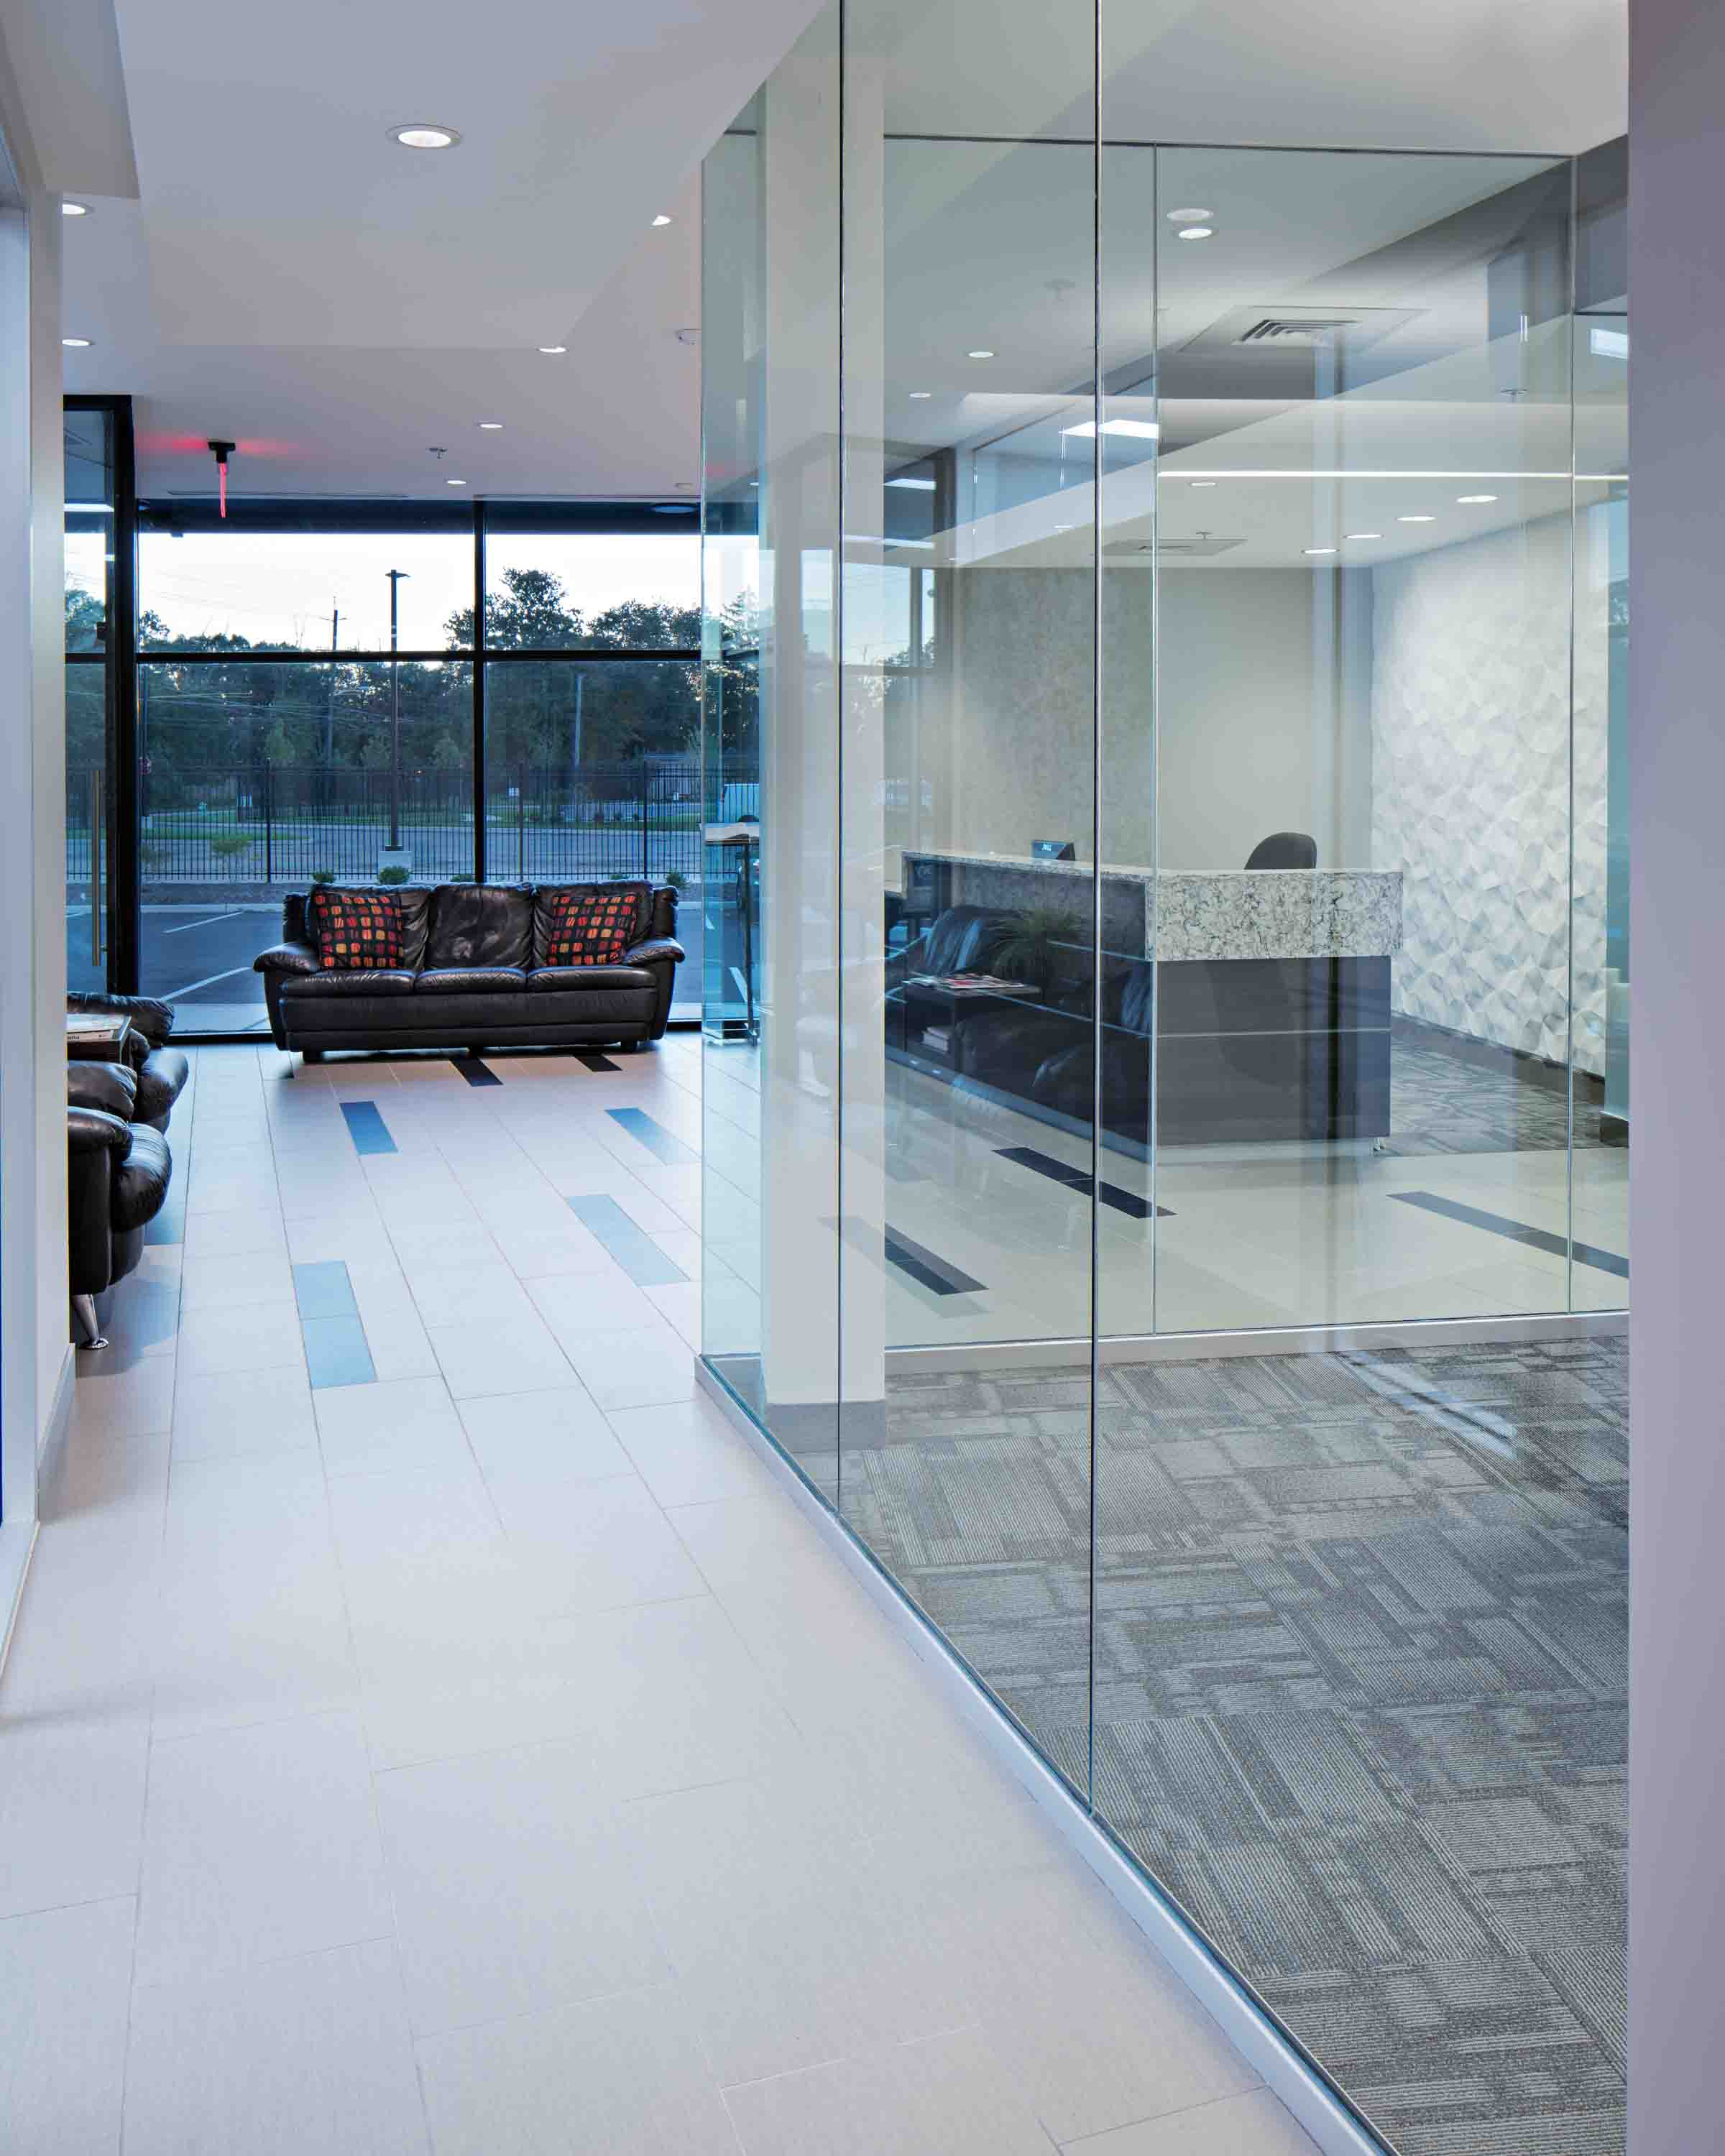 Commercial Design And Renovation Services: Design-Build Commercial Renovation Of Contemporary